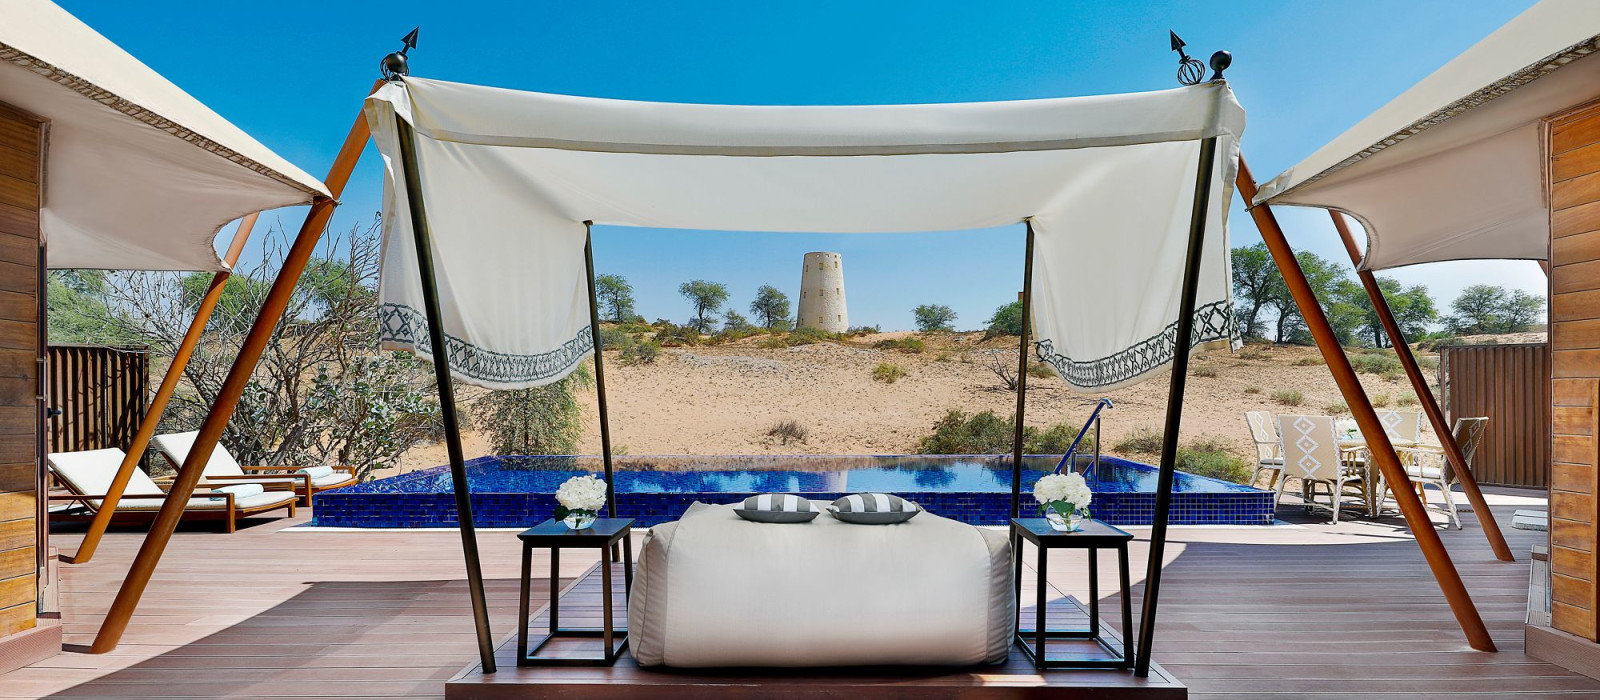 Hotel The Ritz-Carlton Ras Al Khaimah, Al Wadi Desert United Arab Emirates